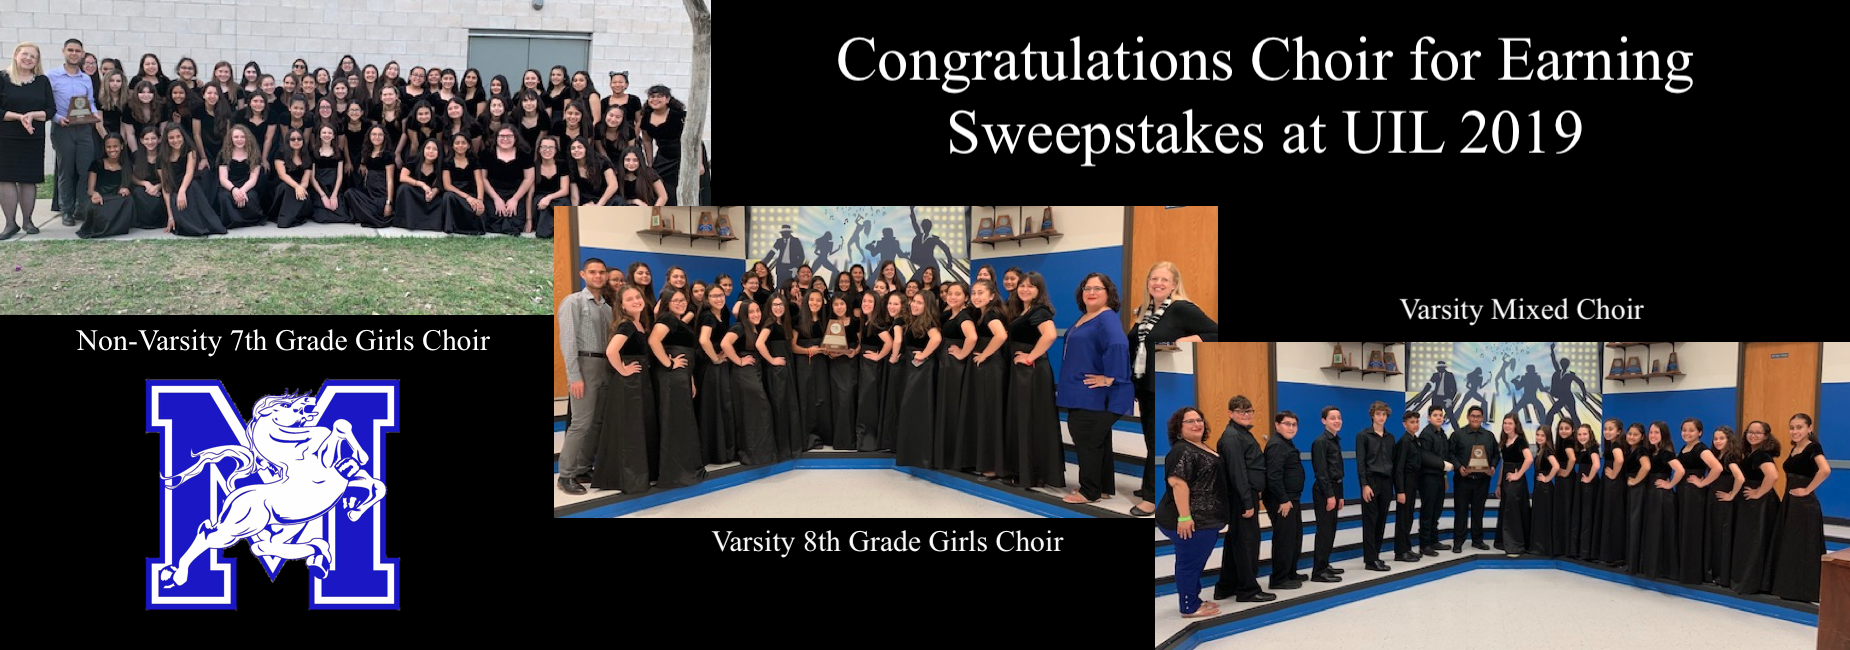 Choir Sweepstakes UIL 2019